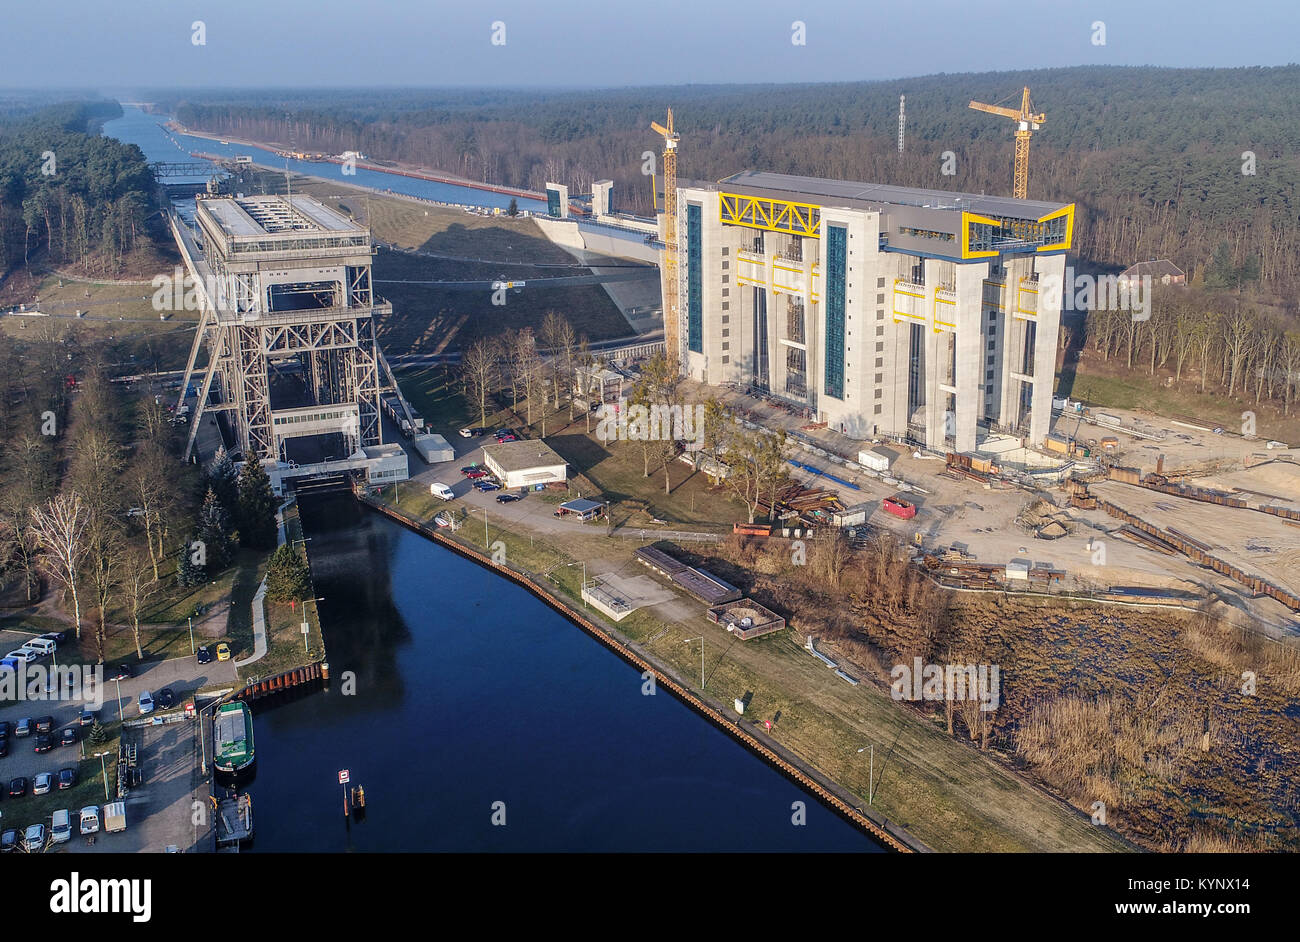 The ship lift currently being constructed (R), as well as the old lift to the left can be seen in Niederfinow, Germany, Stock Photo